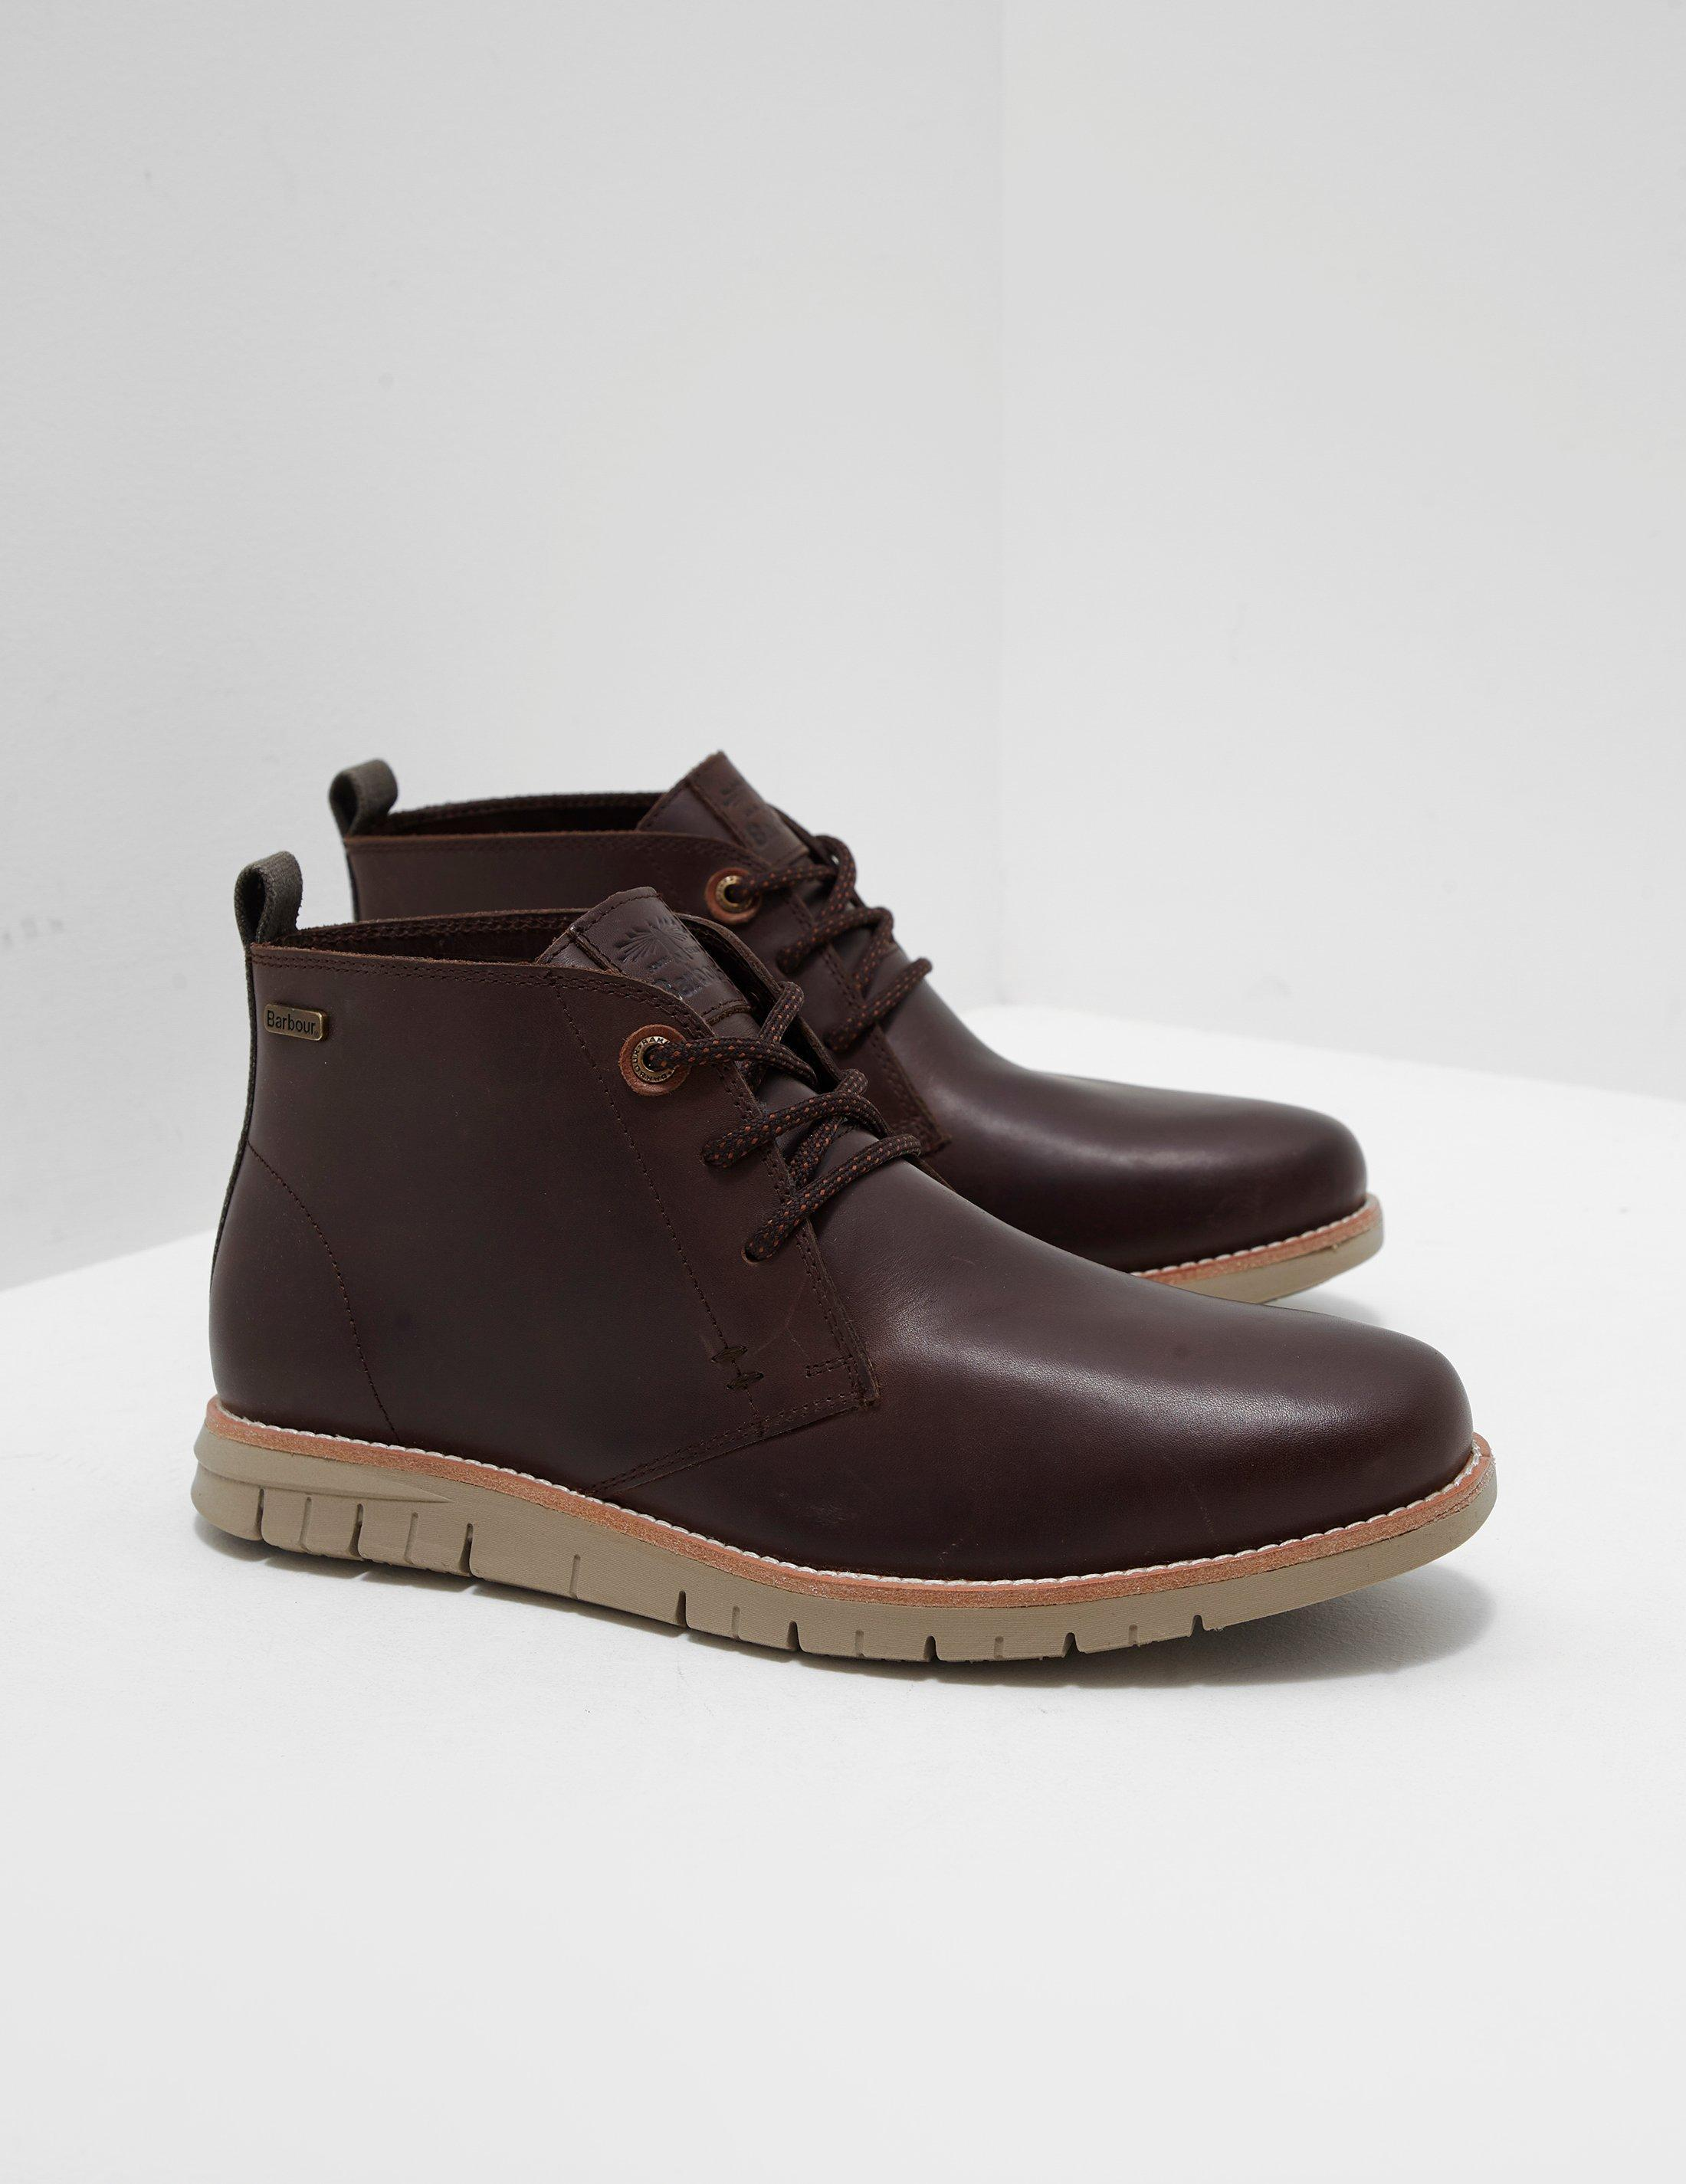 32f3f939f67 Lyst - Barbour Burghley Boot Brown in Brown for Men - Save 32%